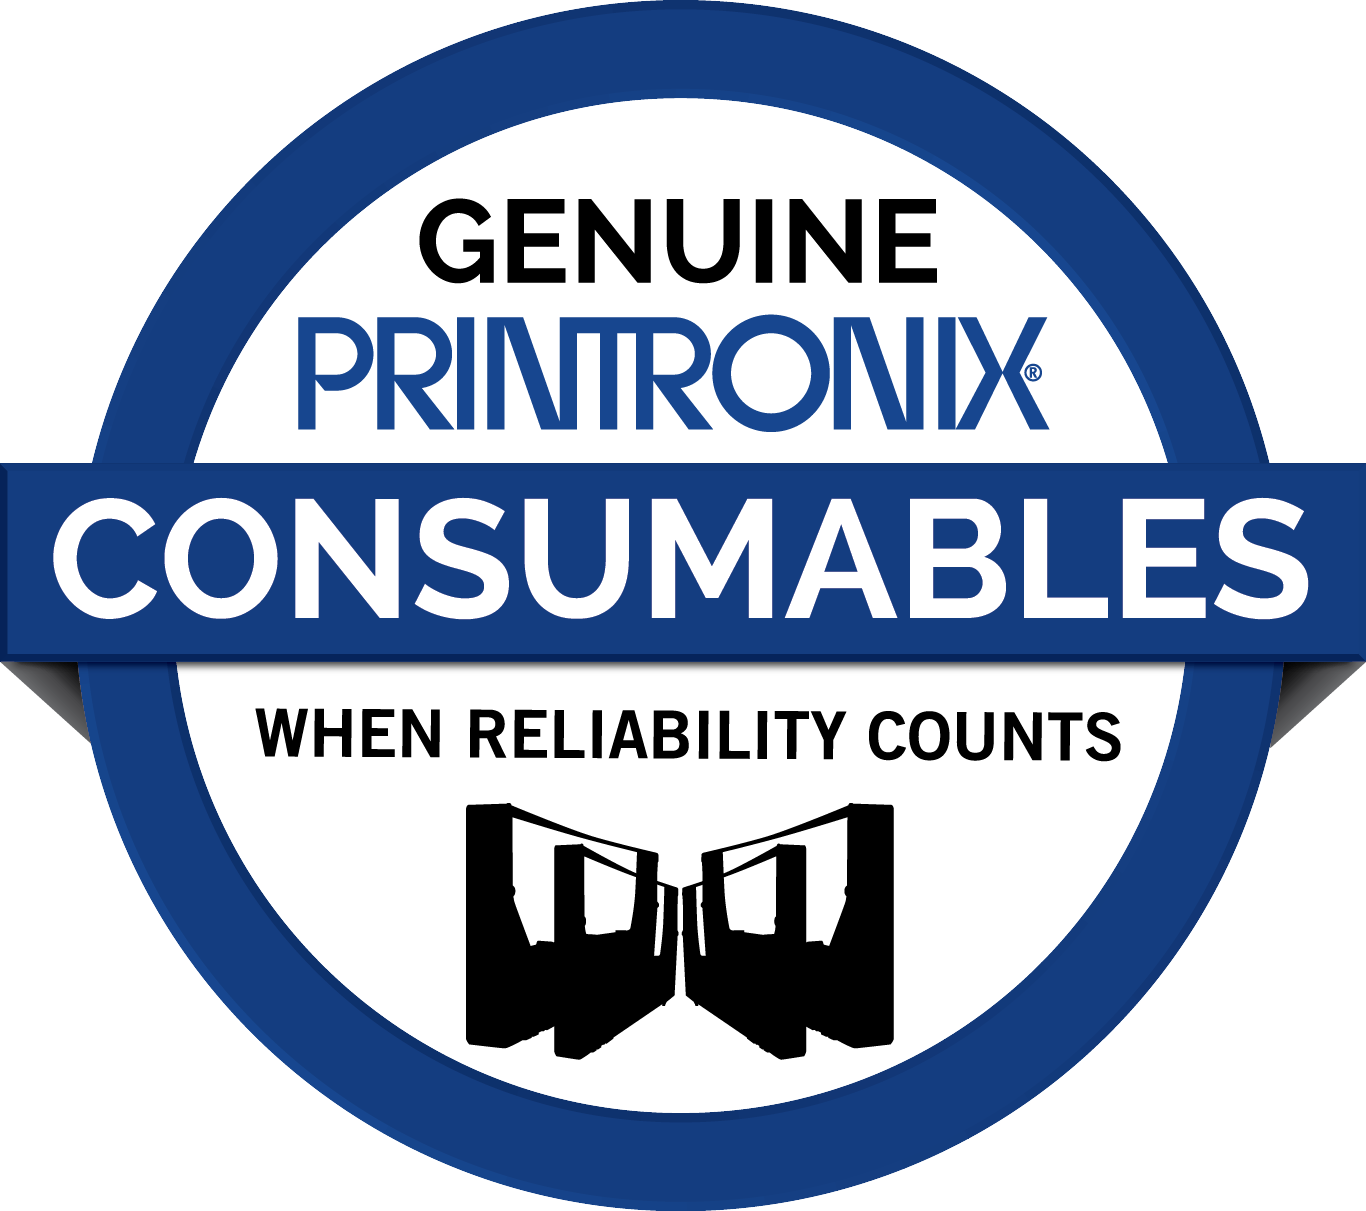 Why Choose Genuine Printronix Consumables?